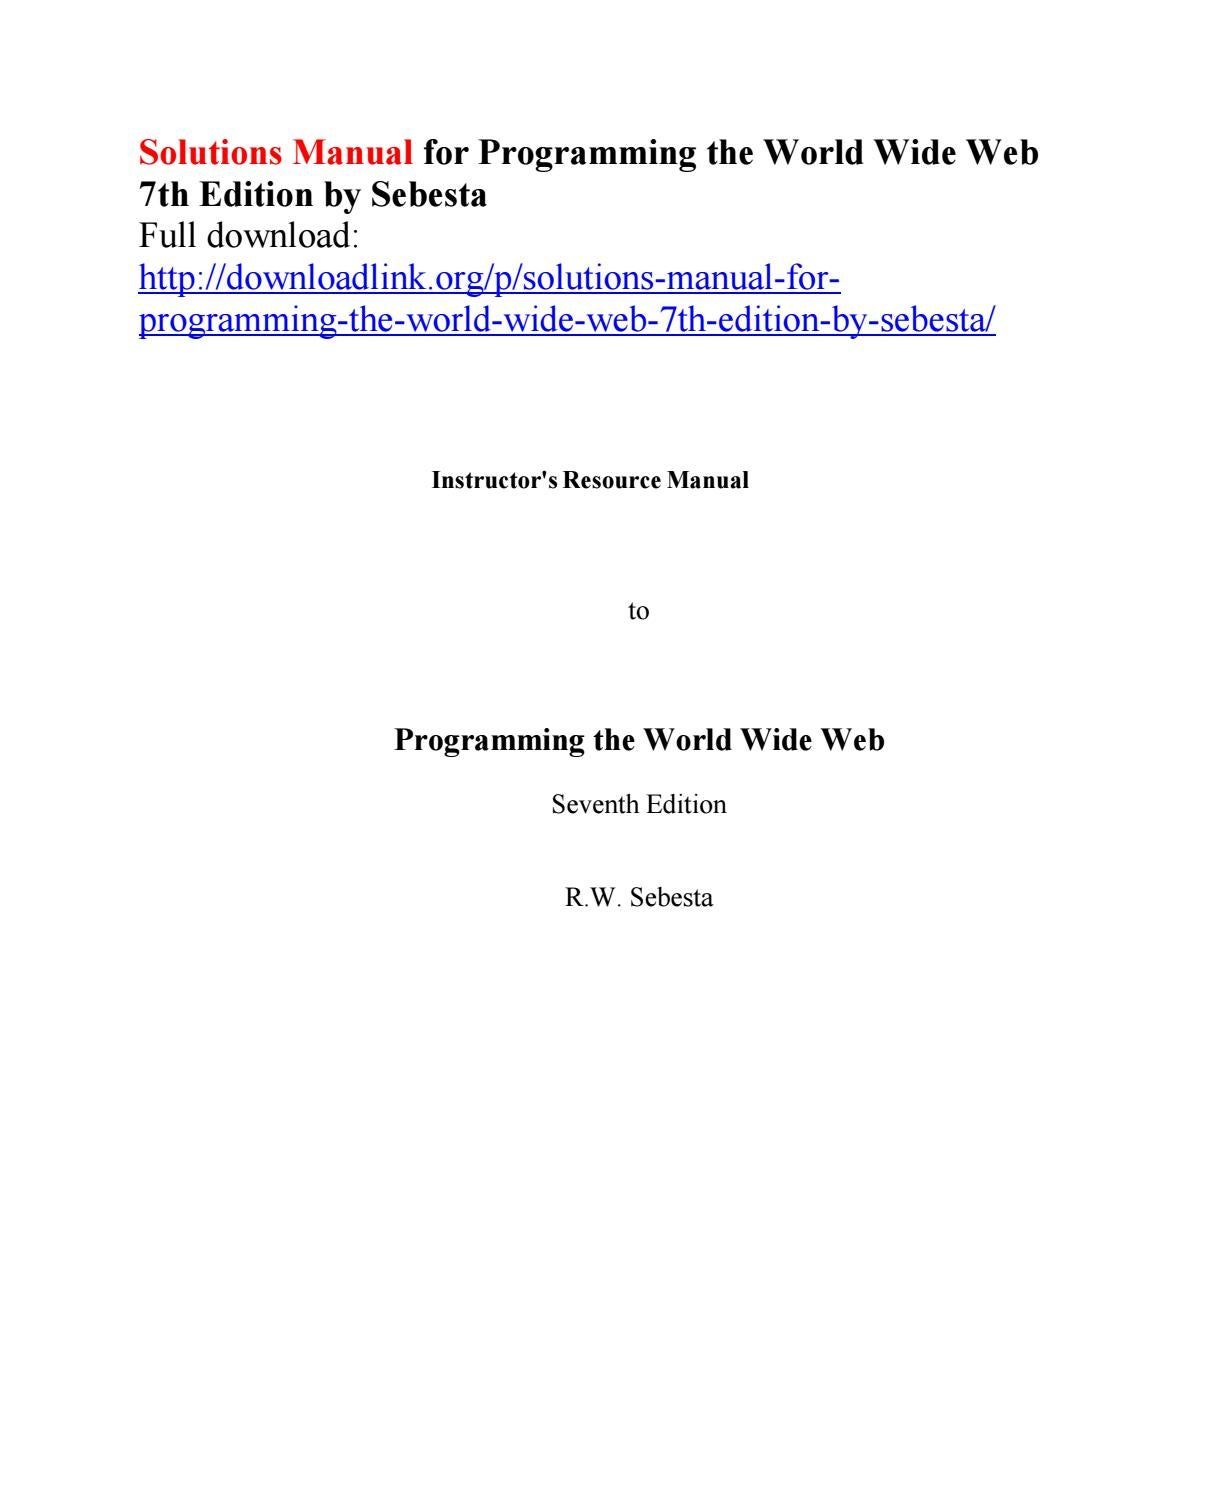 Solutions manual for programming the world wide web 7th